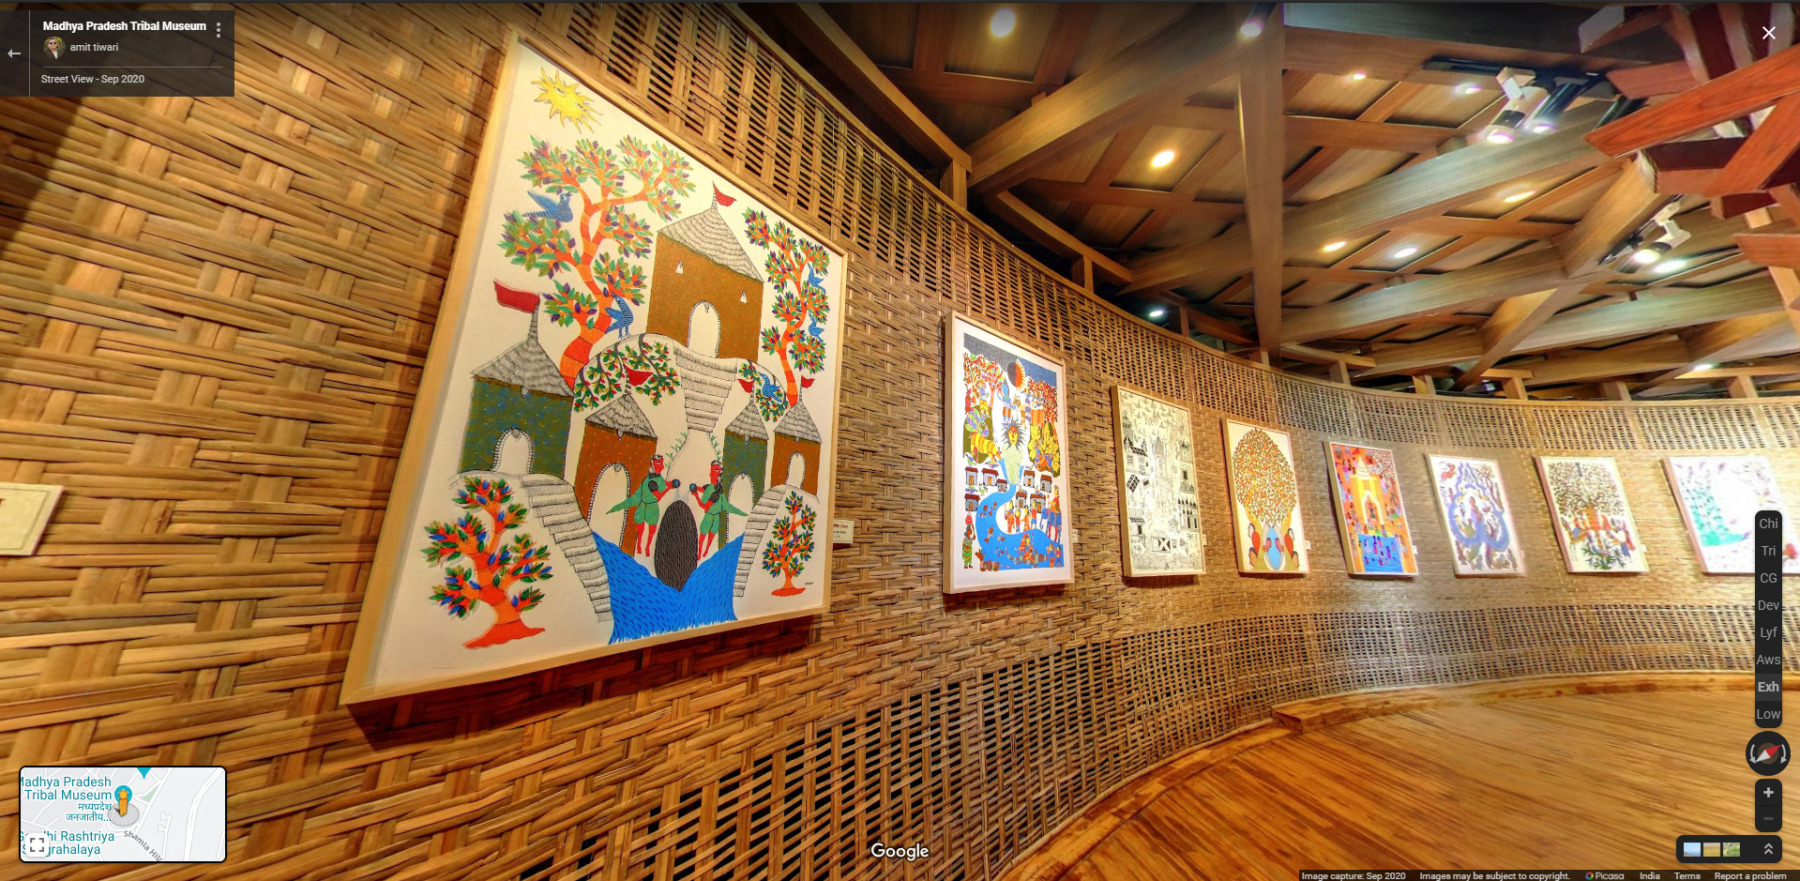 Museum wall showing 8 paintings in bright colors and in various geometrical shapes.